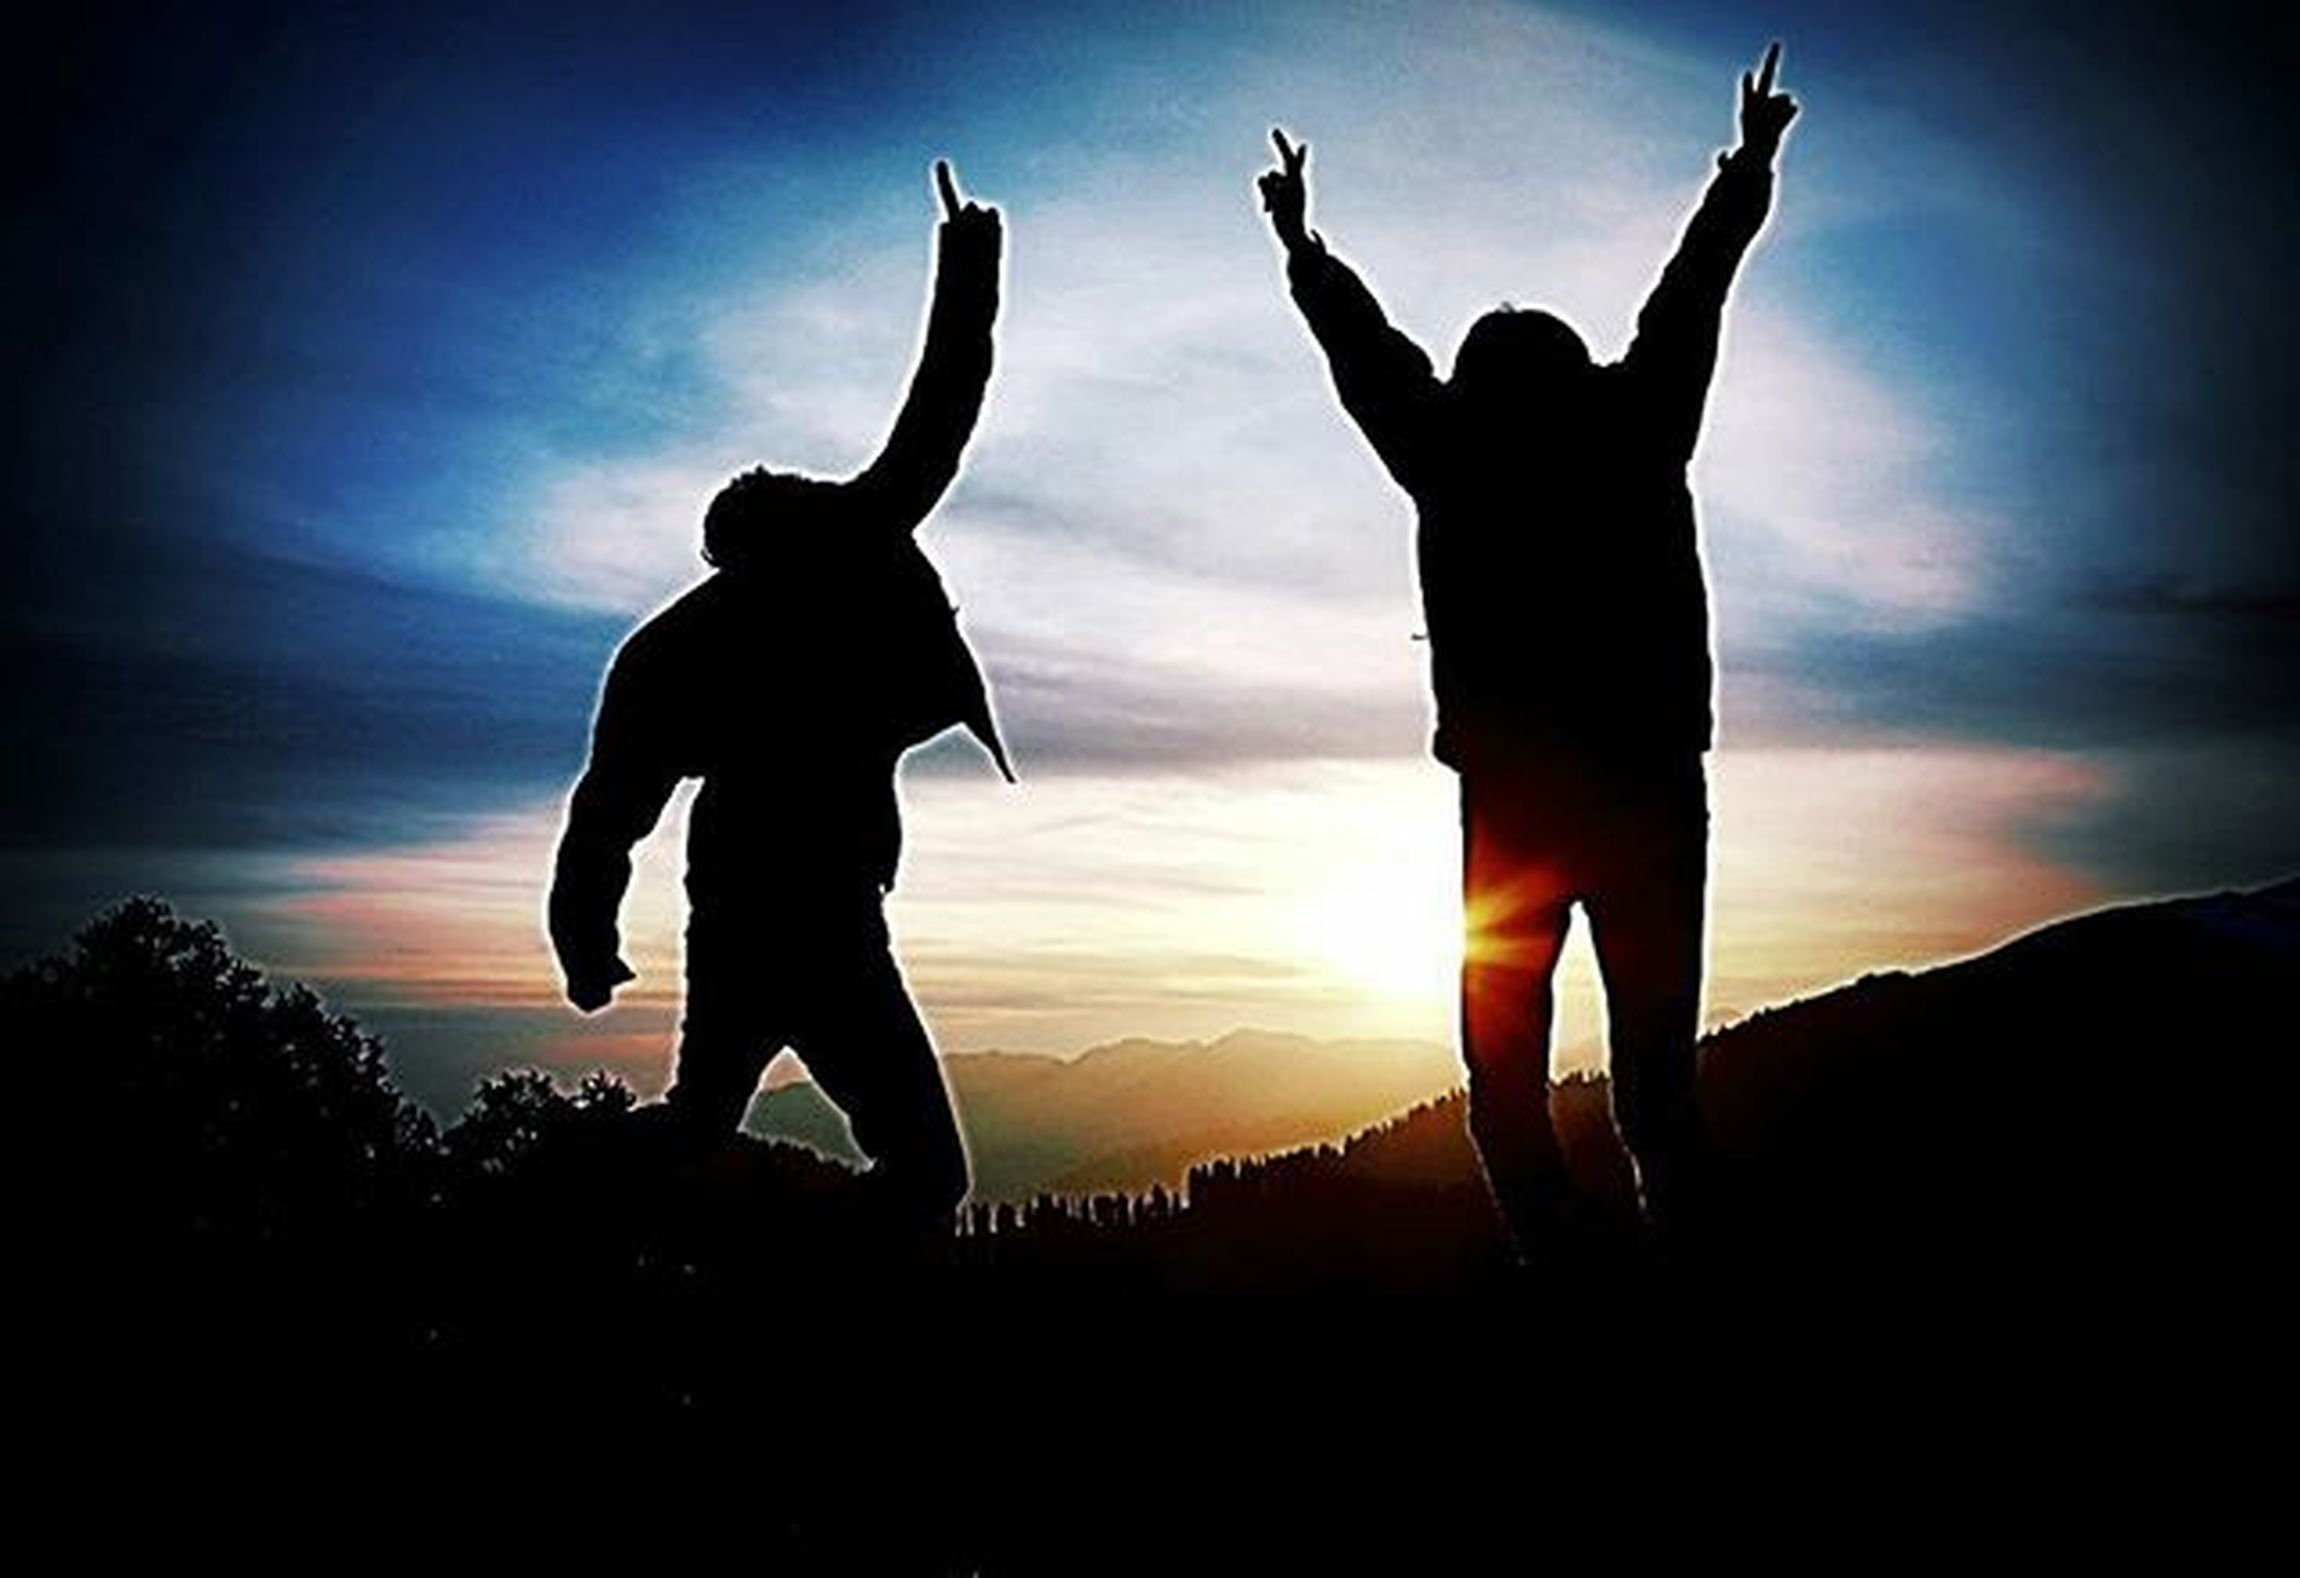 Brothers Athighplaces Stayhigh Staypositive ★ Livelife Freedomlovers Naturelovers NewYearClick Mountainslove Enjoylife Happy Injoy Peace !! ✌